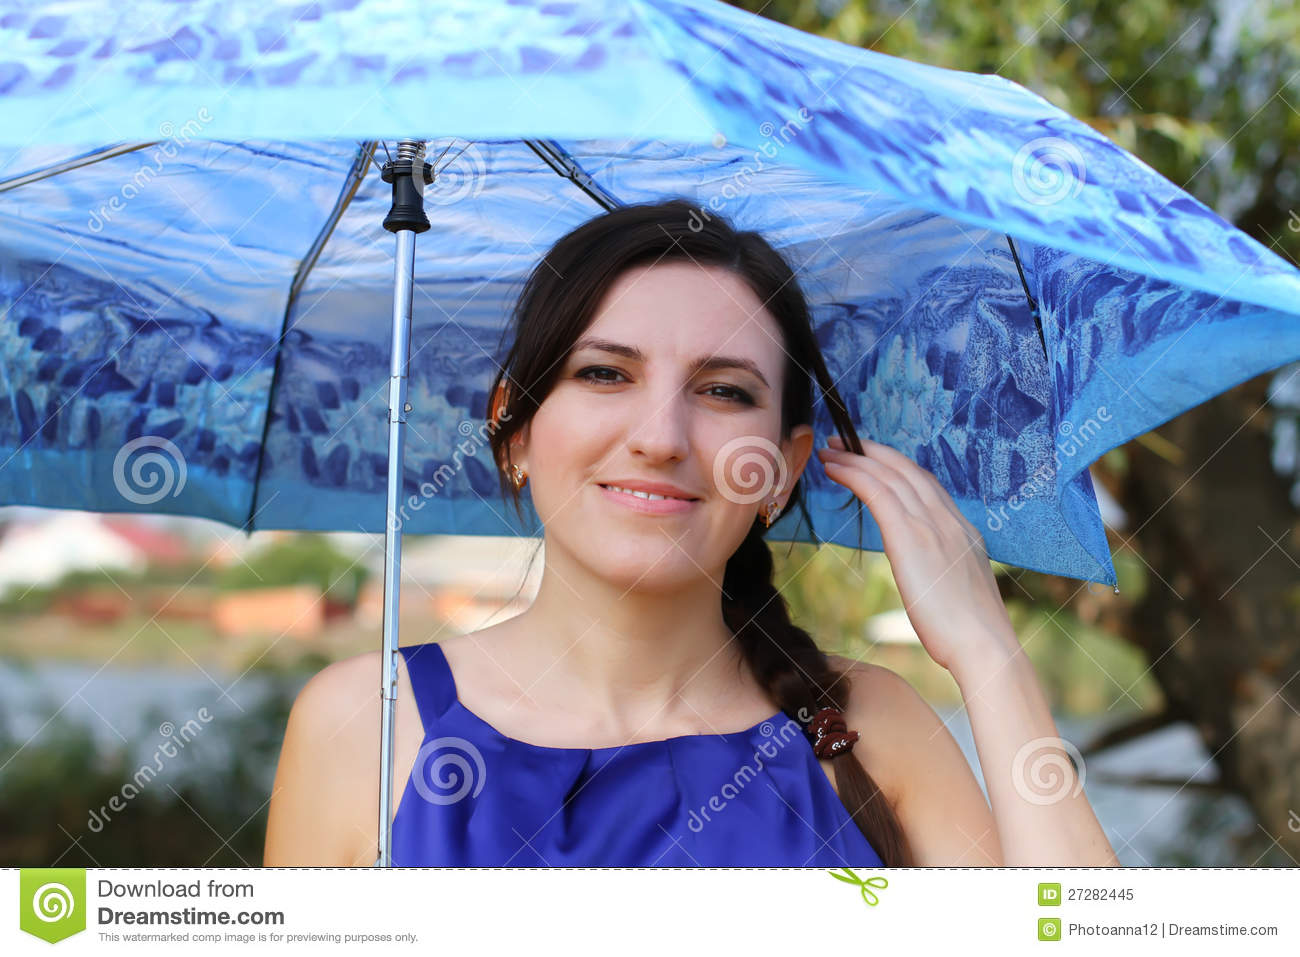 Girl With Umbrella Royalty Free Stock Photo - Image: 27282445